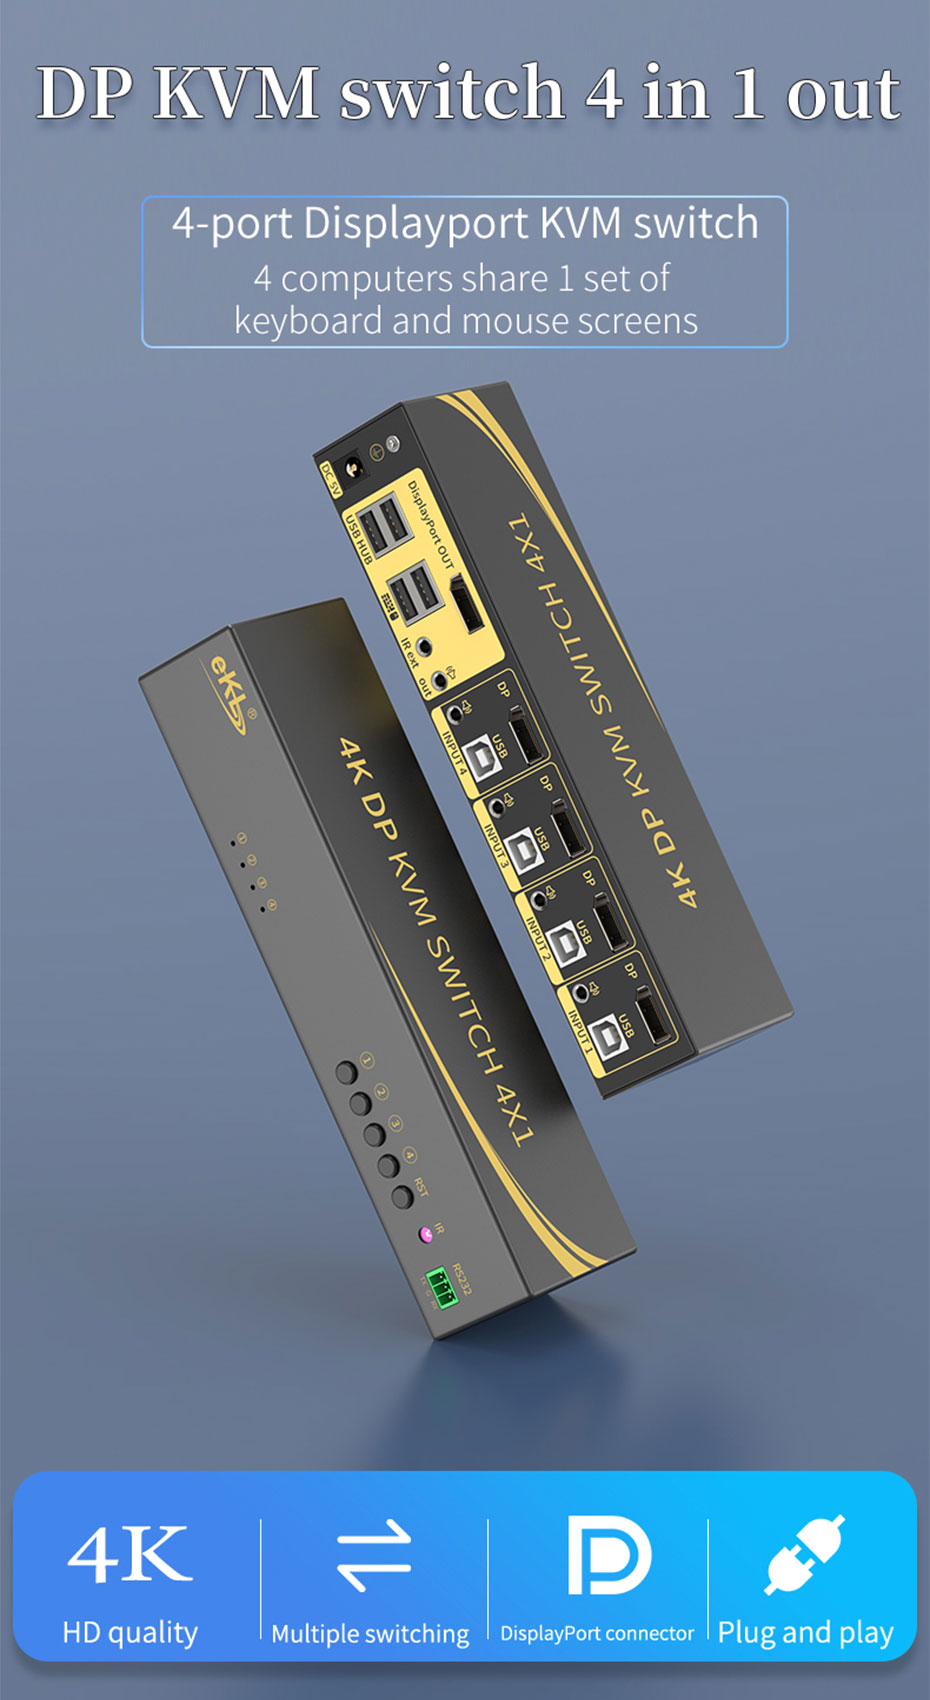 DP KVM switch 4 in 1 out 41DP